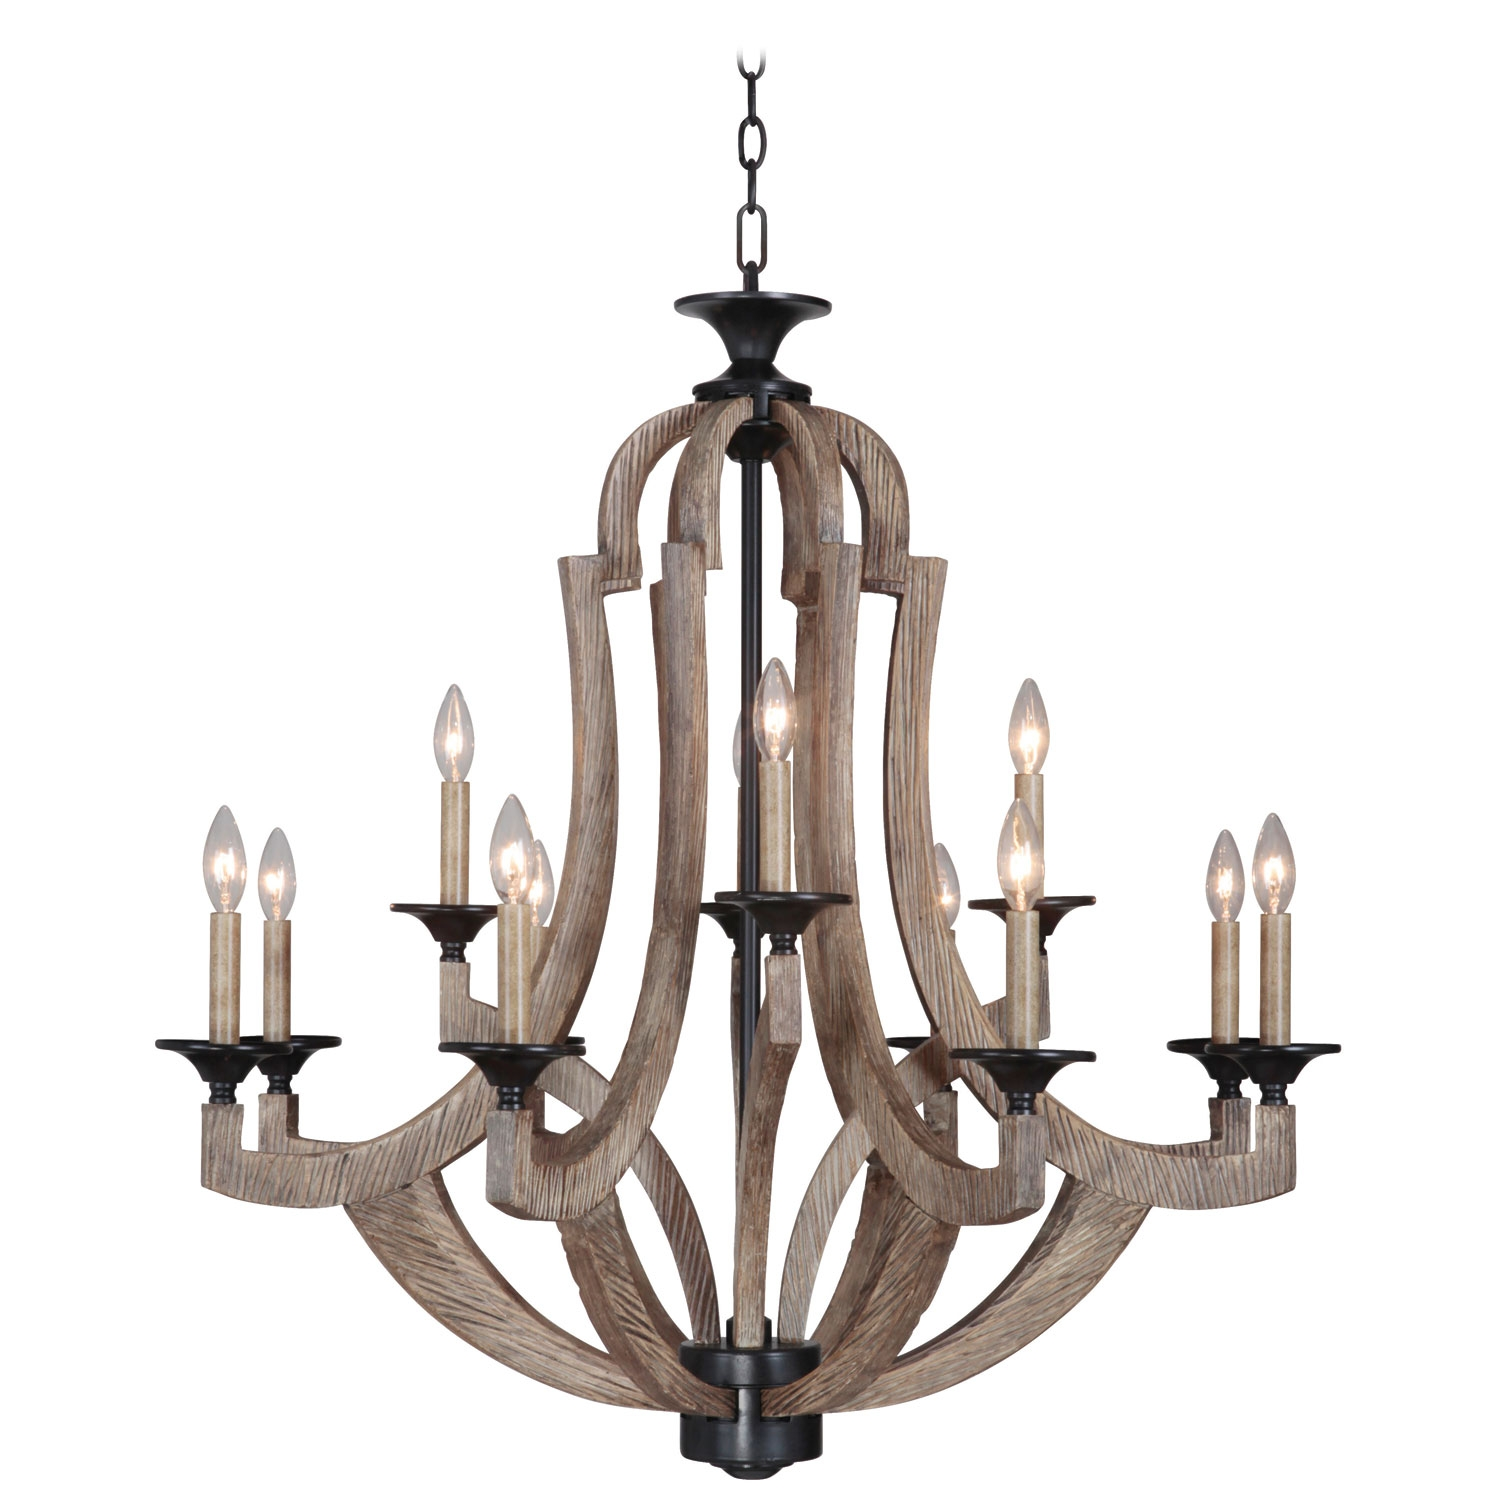 Chandeliers Crystal Modern Iron Shab Chic Country French In Iron Chandelier (Image 5 of 15)